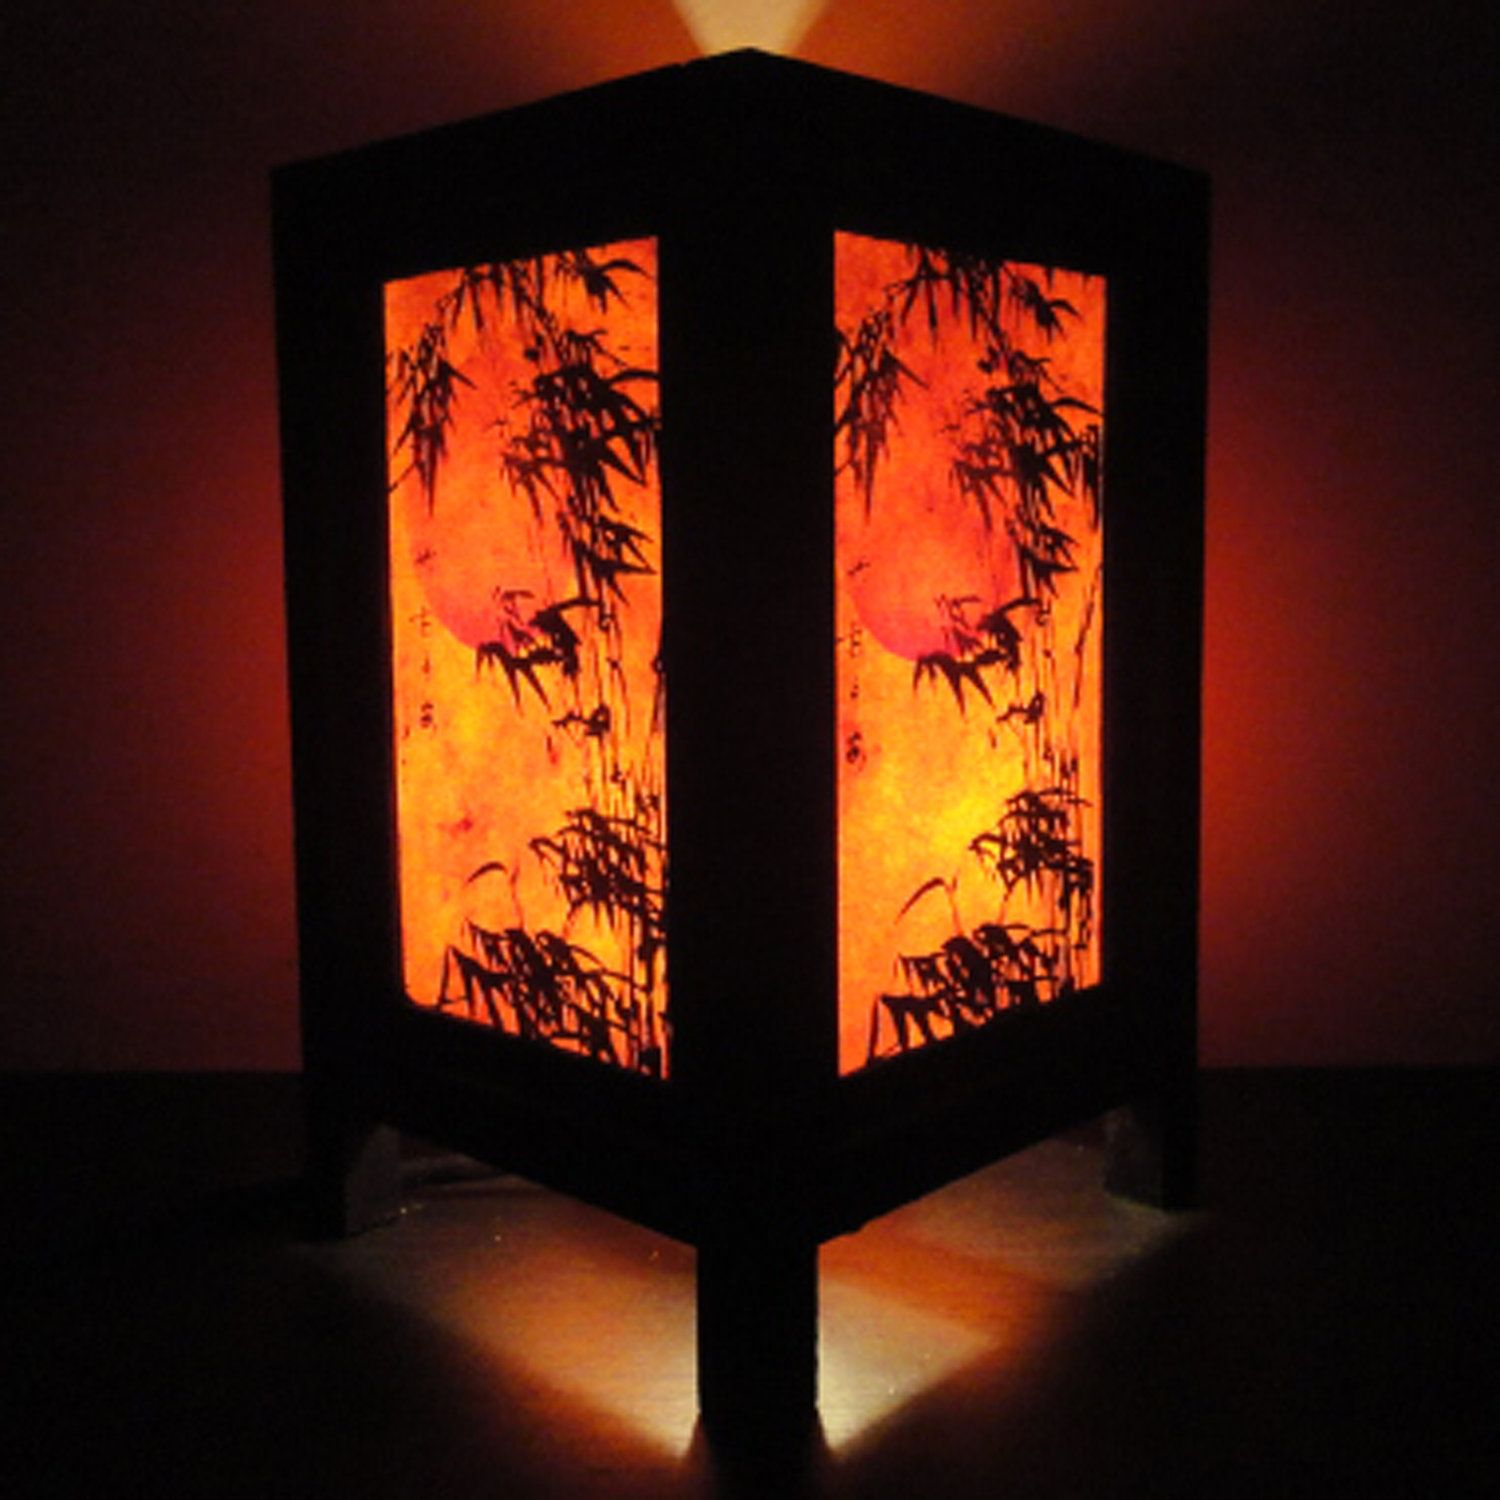 Japanese Paper Lamps Have Made Some Amazing Progress From Being The Odd Lighting For Your School Apartmen Japanese Lamps Painting Lamp Shades Table Lamp Shades